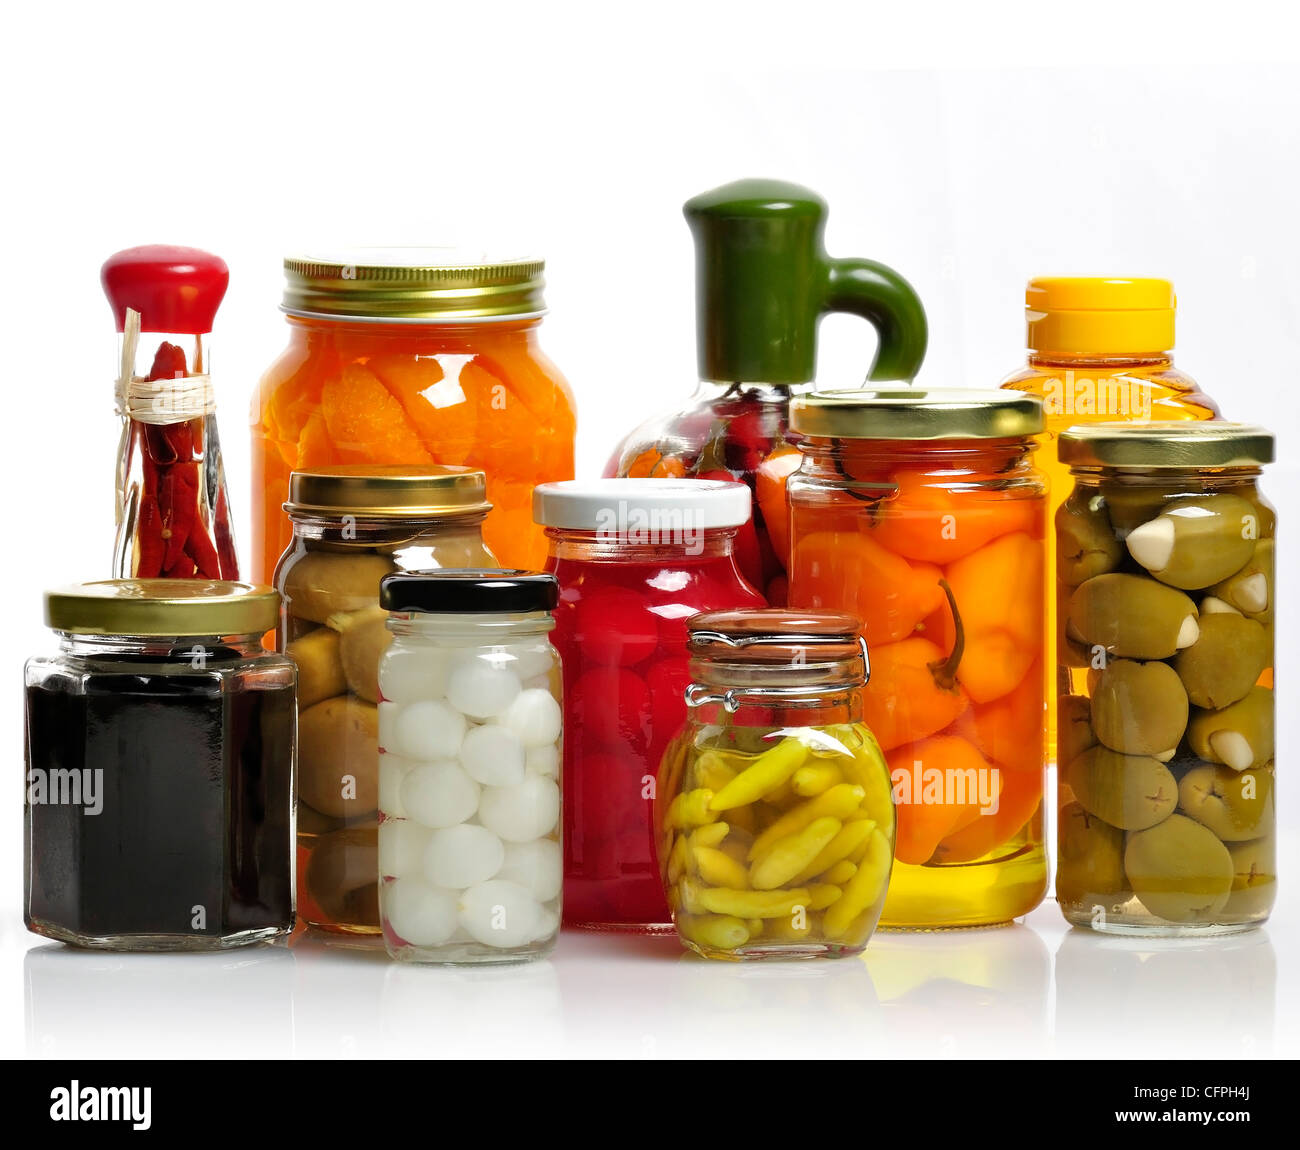 Glass Jars Of Preserved Fruits And Vegetables - Stock Image